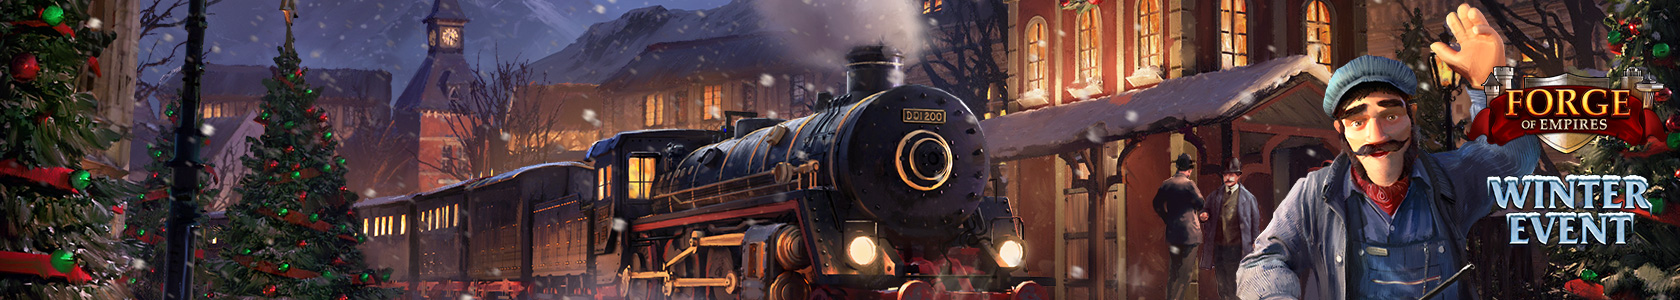 Forge of Empires - Spielen Sie das Winter-Event!